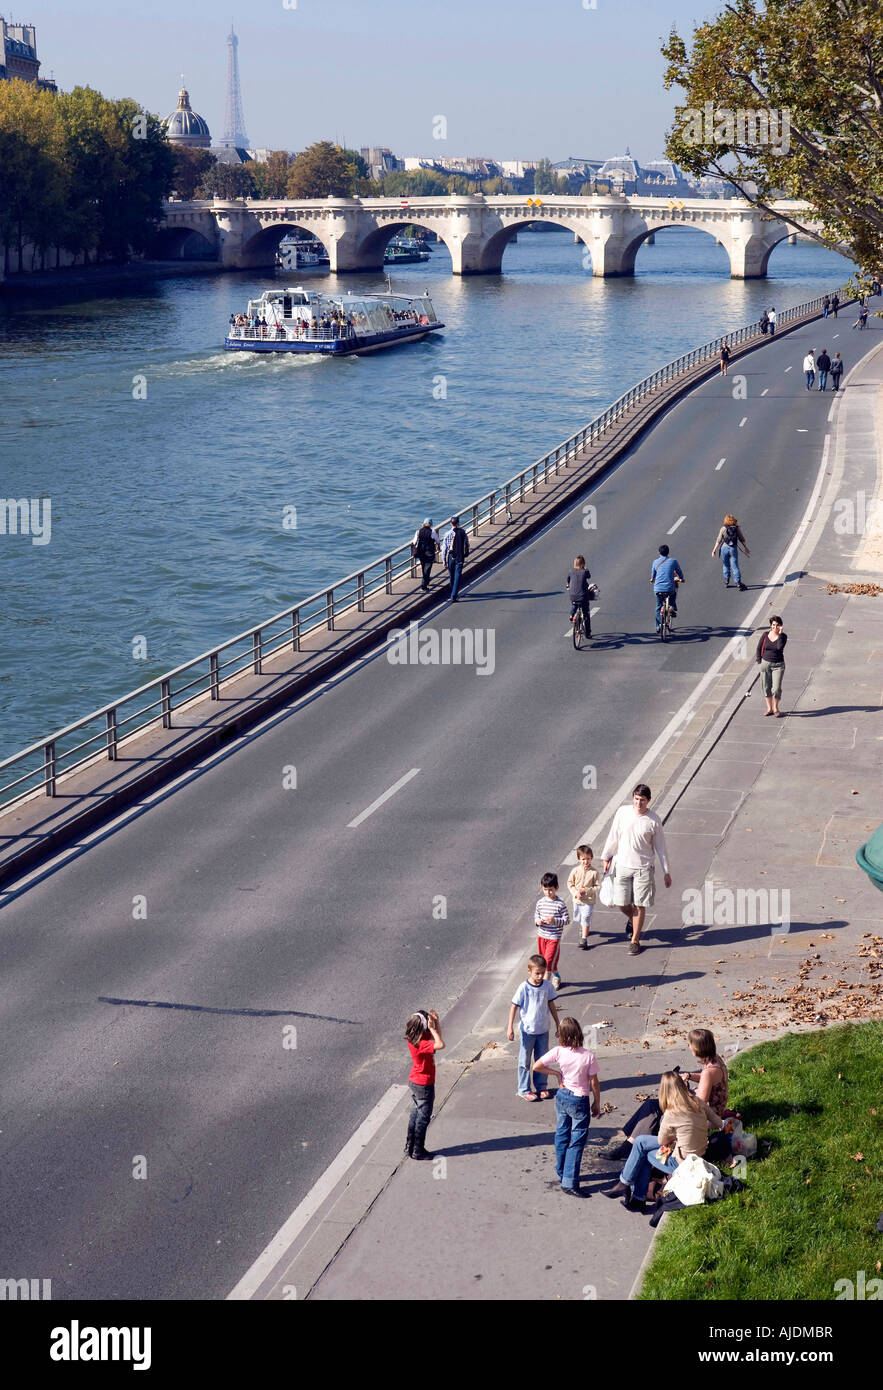 France Paris Banks of the Seine river in central Paris closed to traffic on Sundays - Stock Image